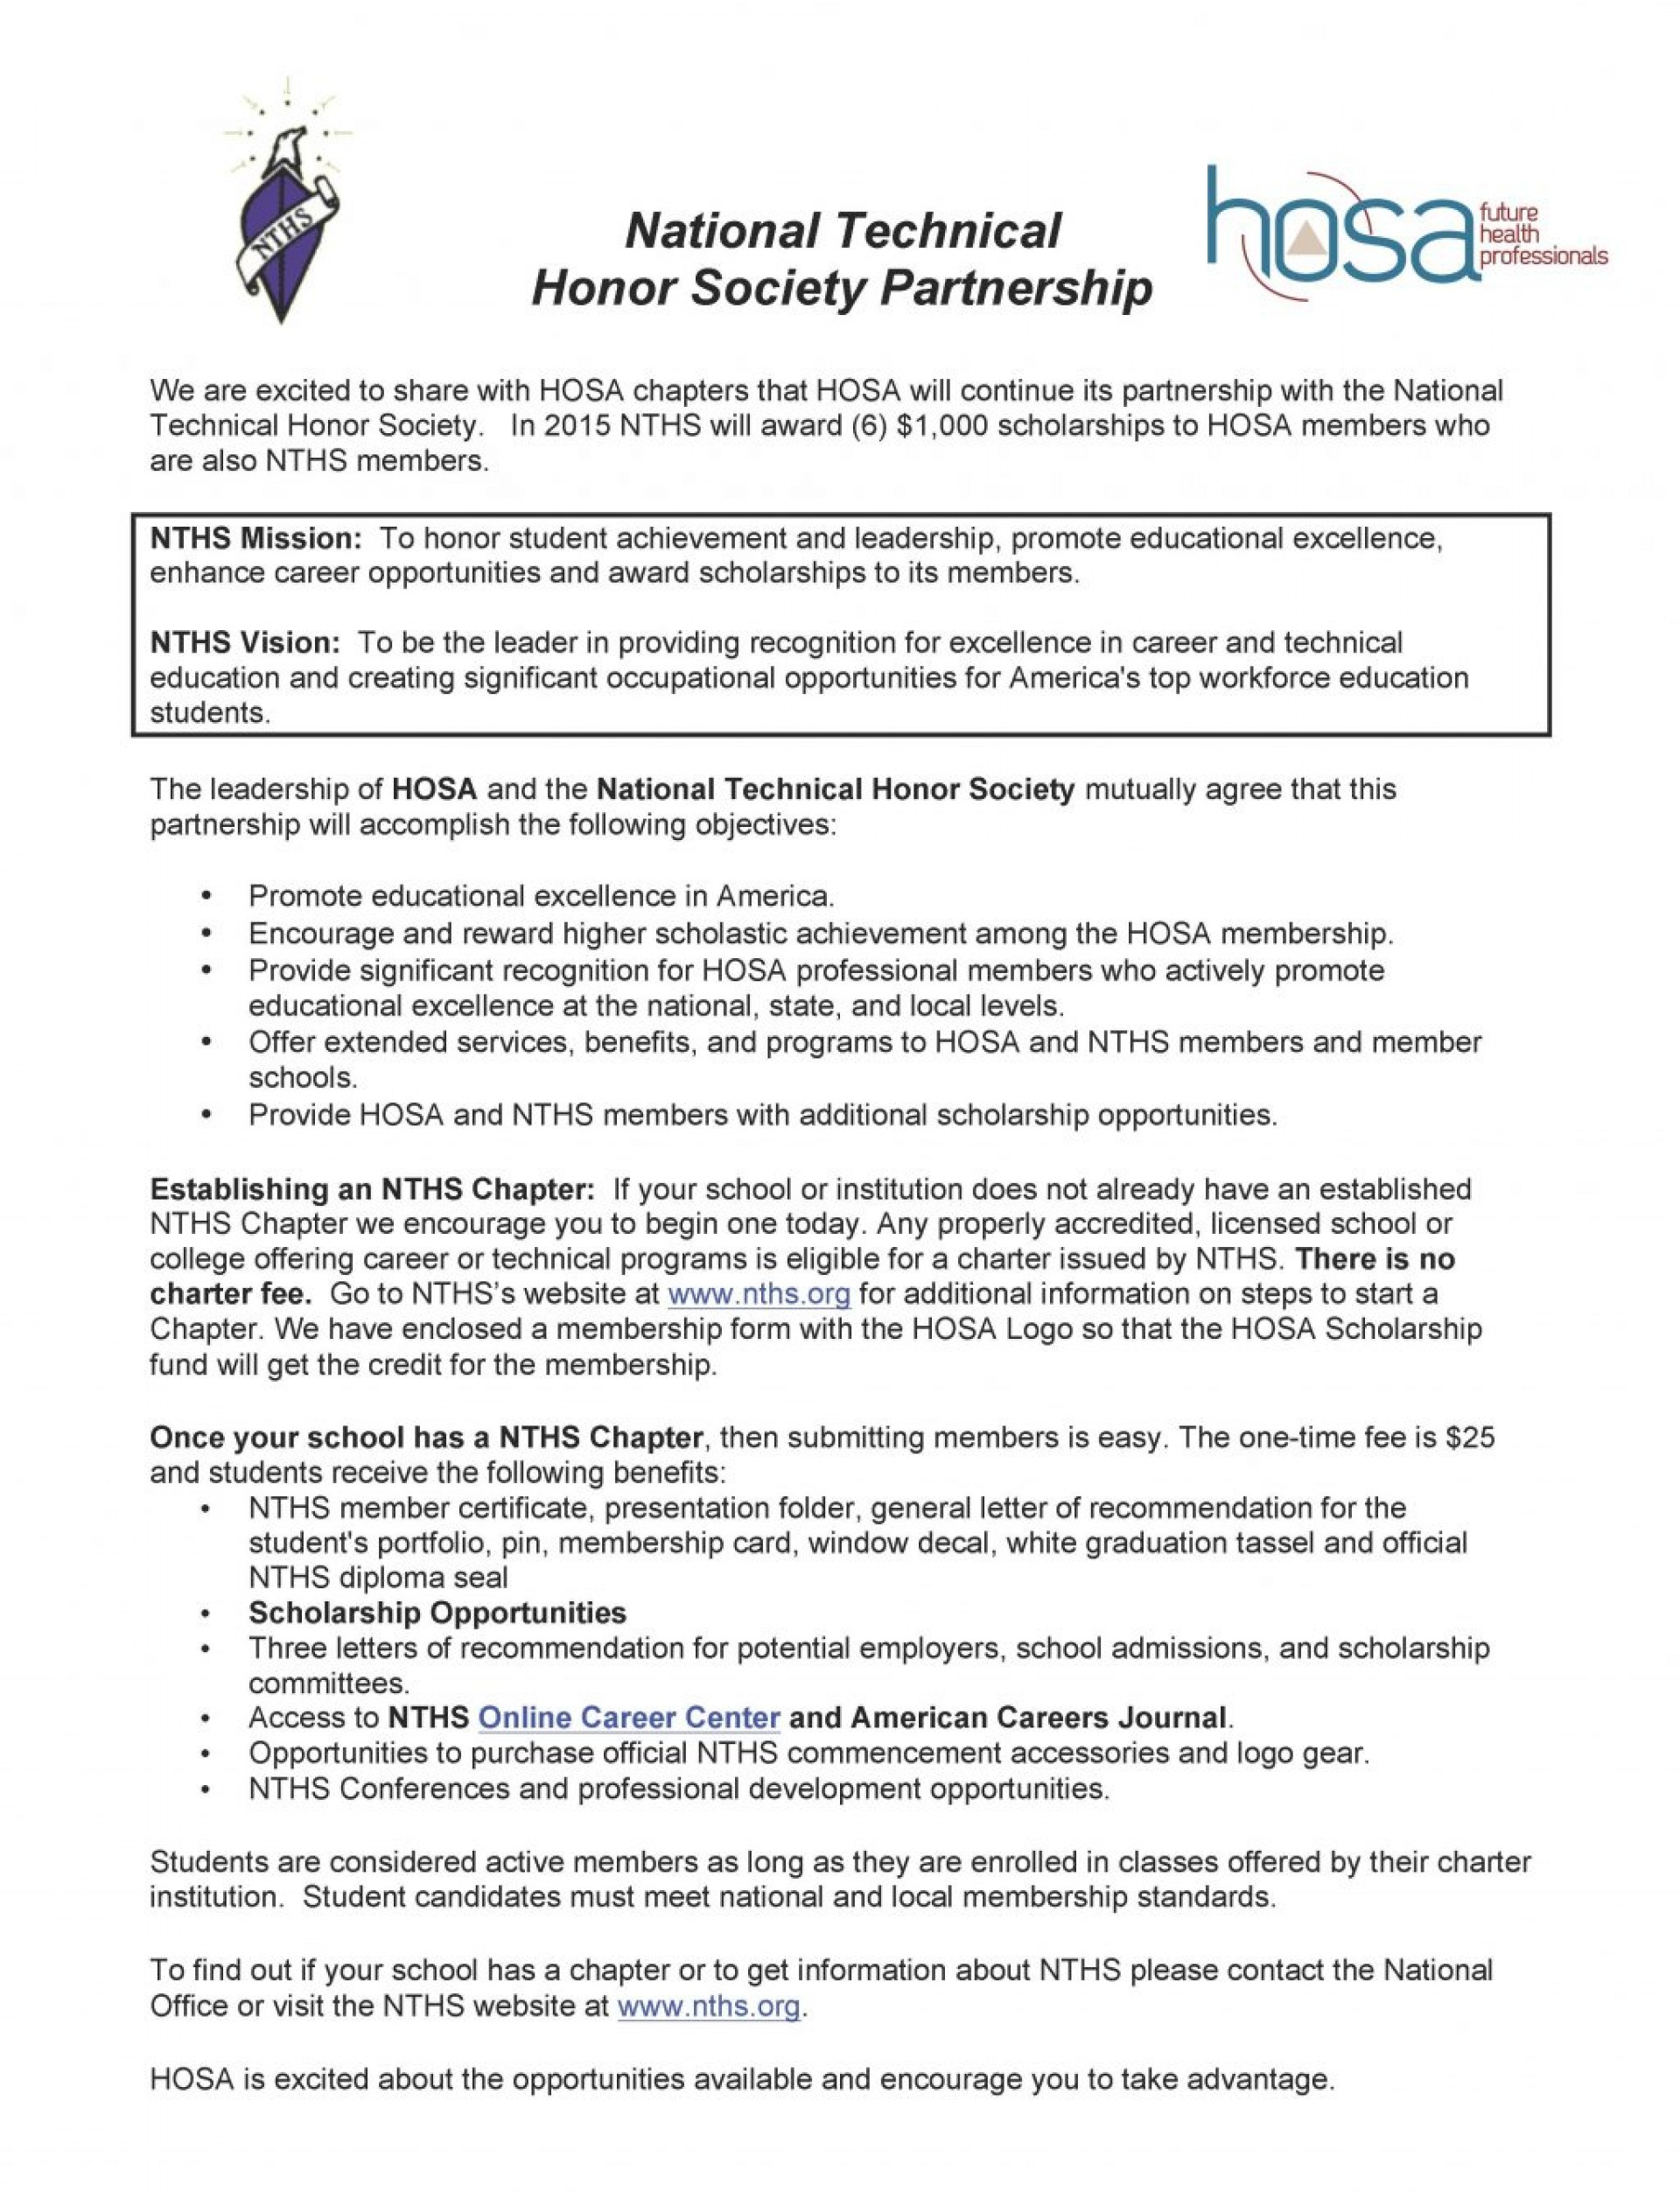 007 National Junior Honor Society Essay Example Cover Letter Nths Page 1 Template 1024x1336 Unique Honors Leadership Sample 1920